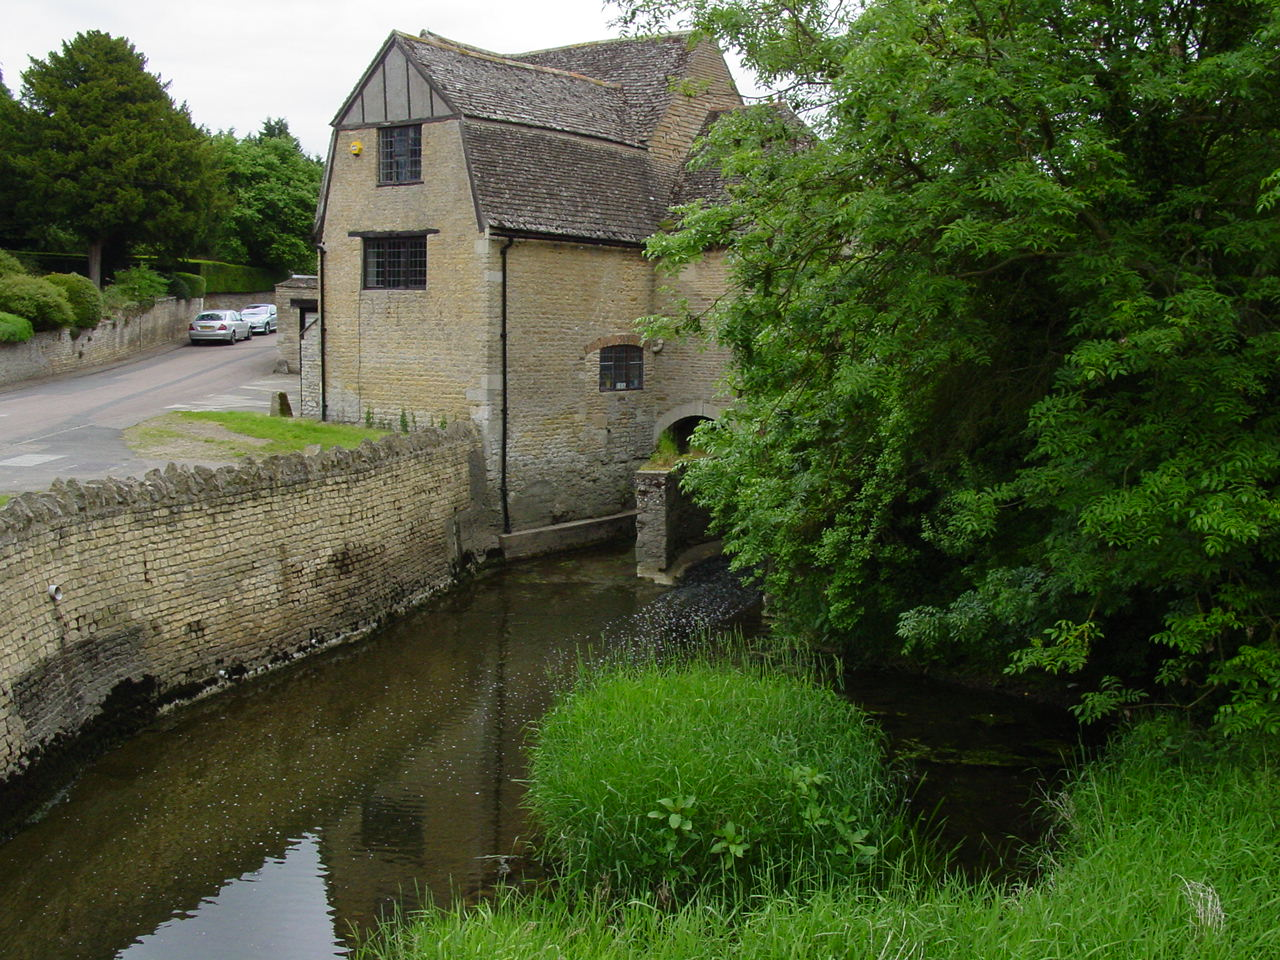 Duddington Mill on the River Welland (as seen on a visit in 2005).